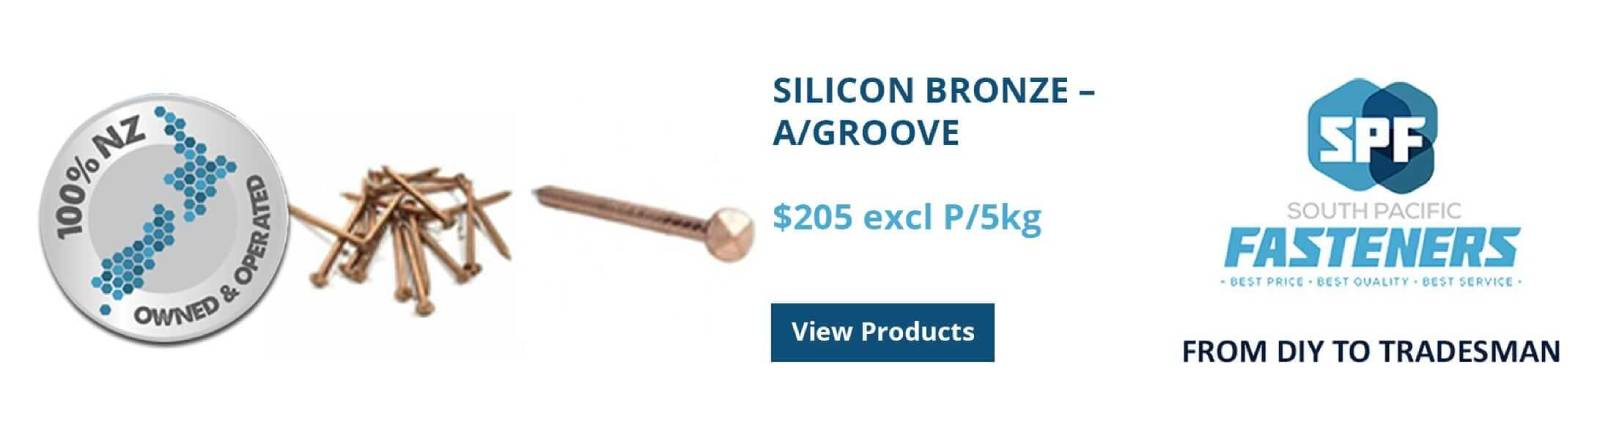 Silicon Bronze A-Groove Special - SP Fasteners